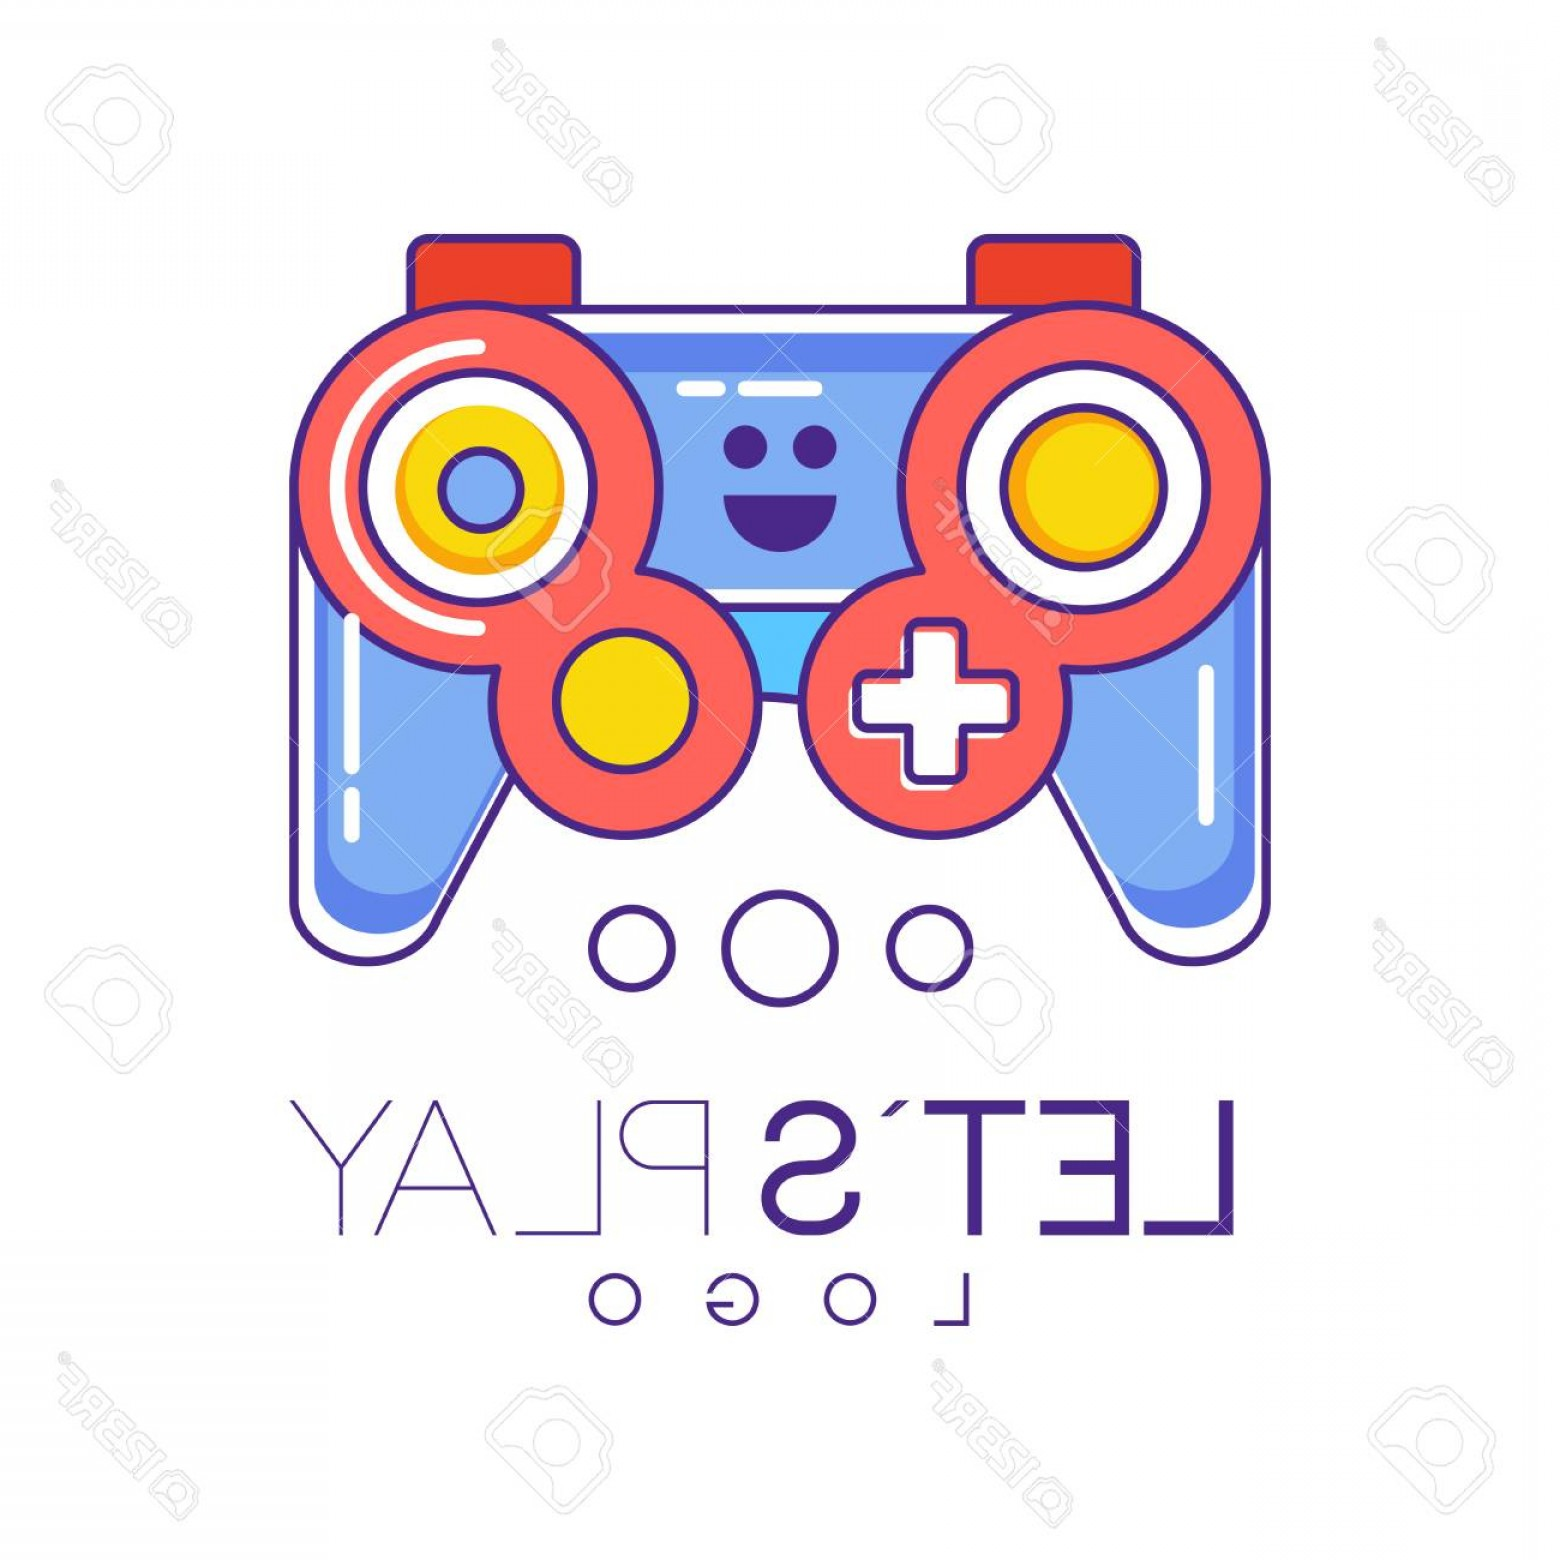 Xbox Game Controller Vector: Photostock Vector Xbox Gamepad Logo Design In Line Style With Red And Blue Fill Wireless Joystick For Game Console Gra